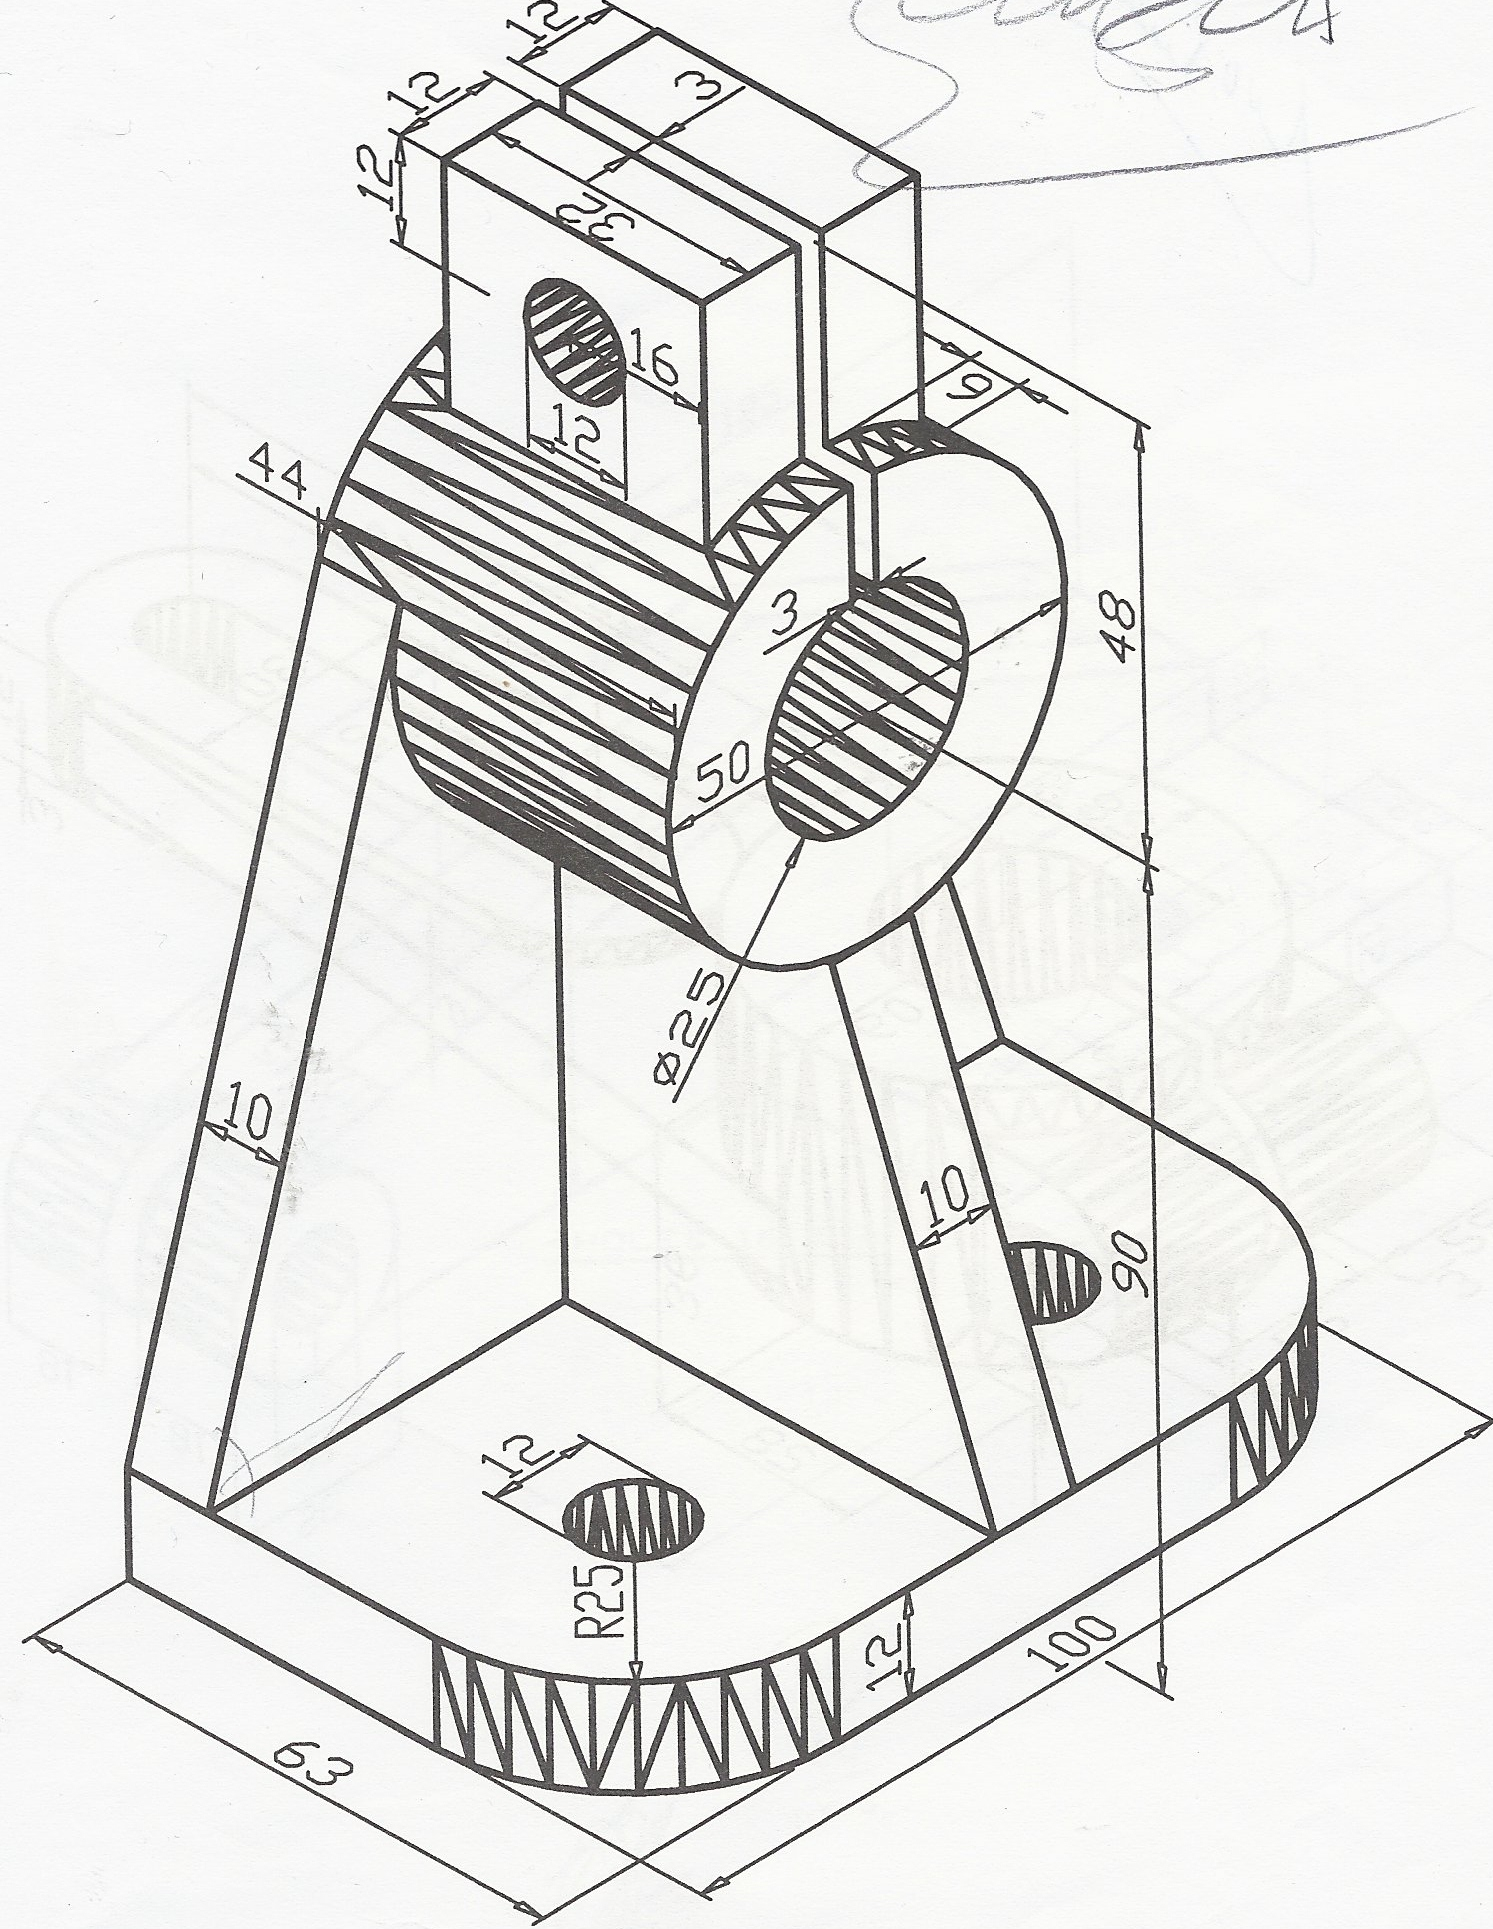 tutorial 15: 3D Engineering Drawing 2 (AUTO CAD